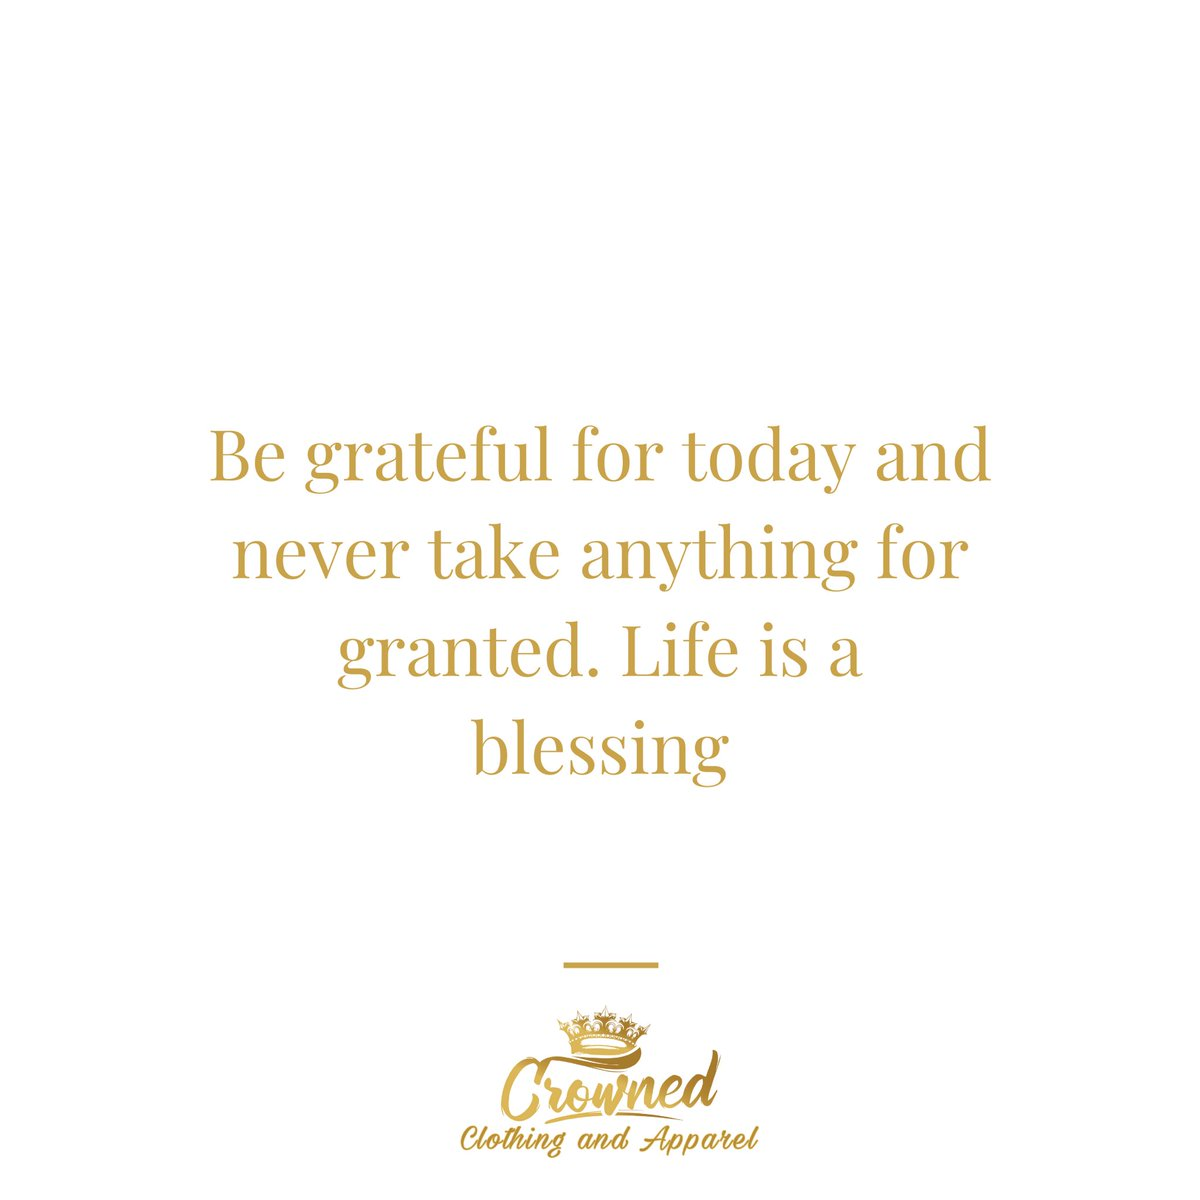 There's never a time were you should take anything for granted. Stay grateful and thankful that each day is a blessing. .  . . . #gratefuleveryday #thankfulgratefulblessed #thankful  #grateful  #gratitudequotes #sundaymornings #sundayz #blessings #blessings #inspirationalquotes <br>http://pic.twitter.com/mRo4rlrt7h